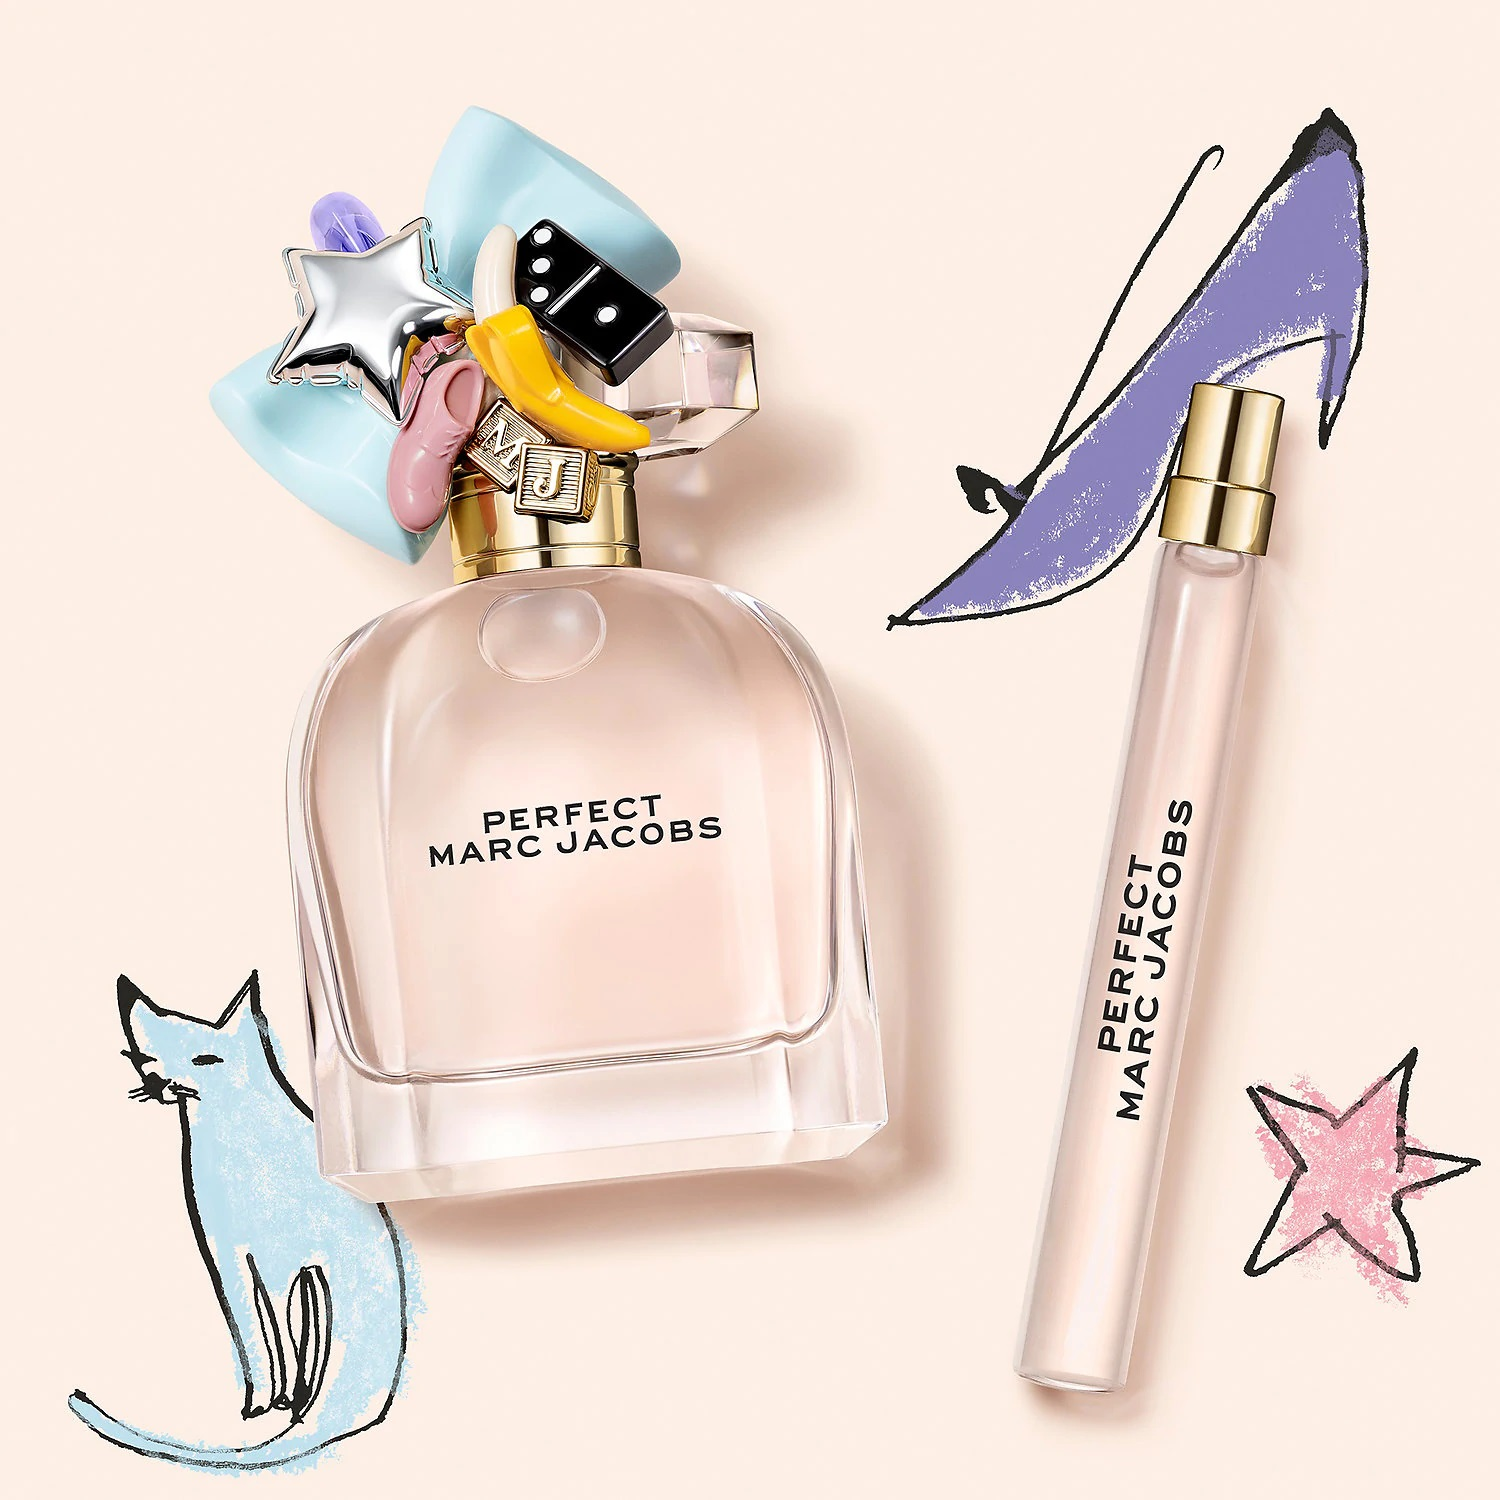 Marc Jacobs Perfect opinie